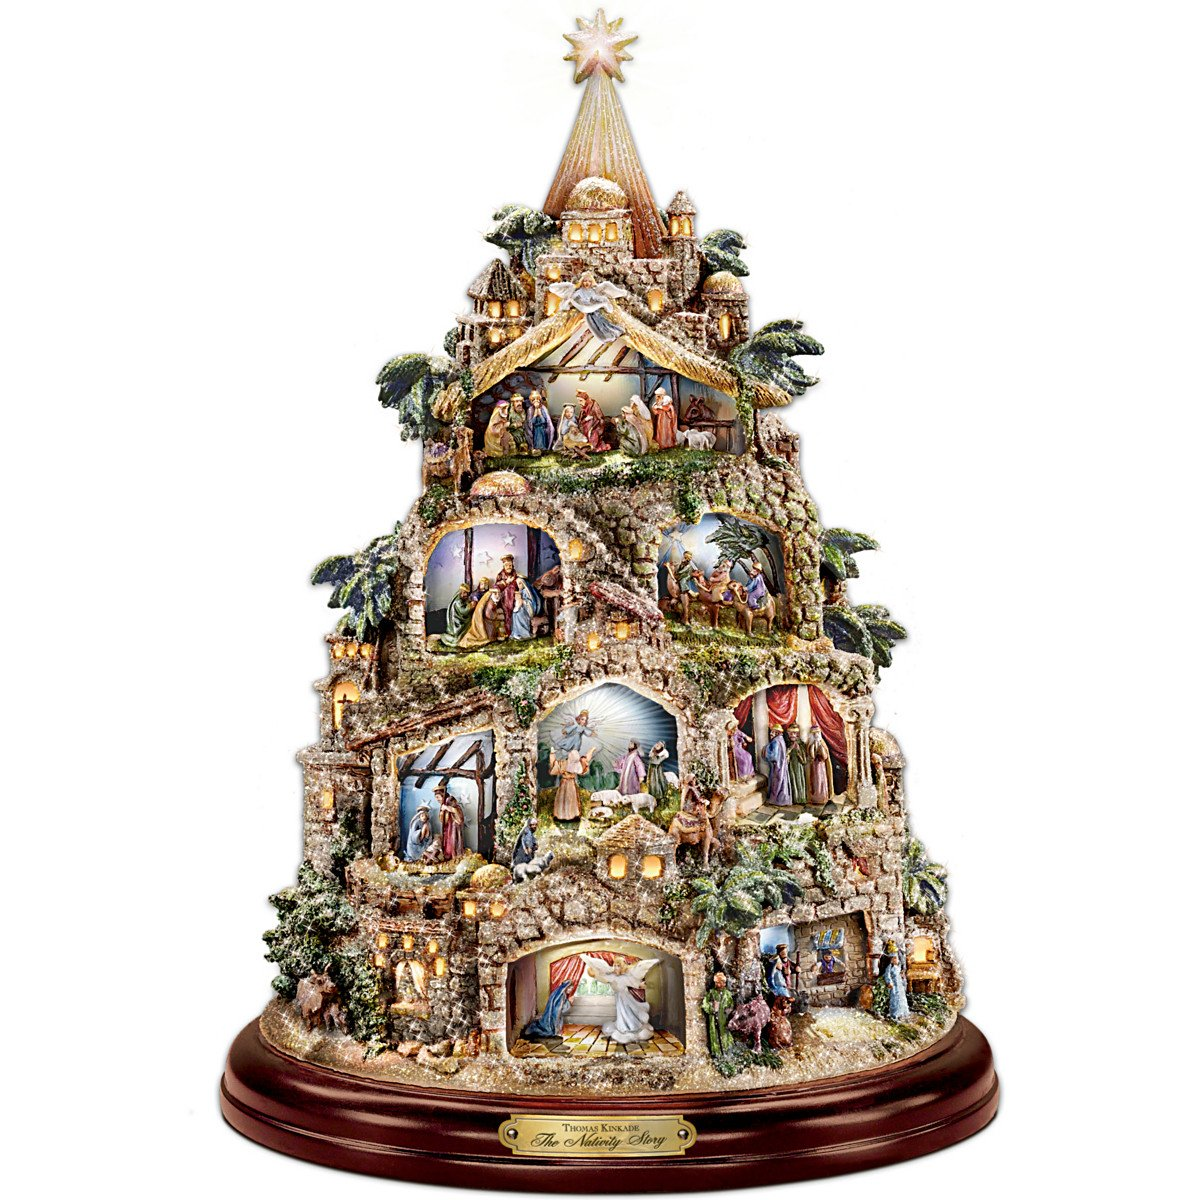 The Bradford Exchange - Illuminated Nativity Tree with Thomas Kinkade Narration - 8 Scenes - Illuminated - 12